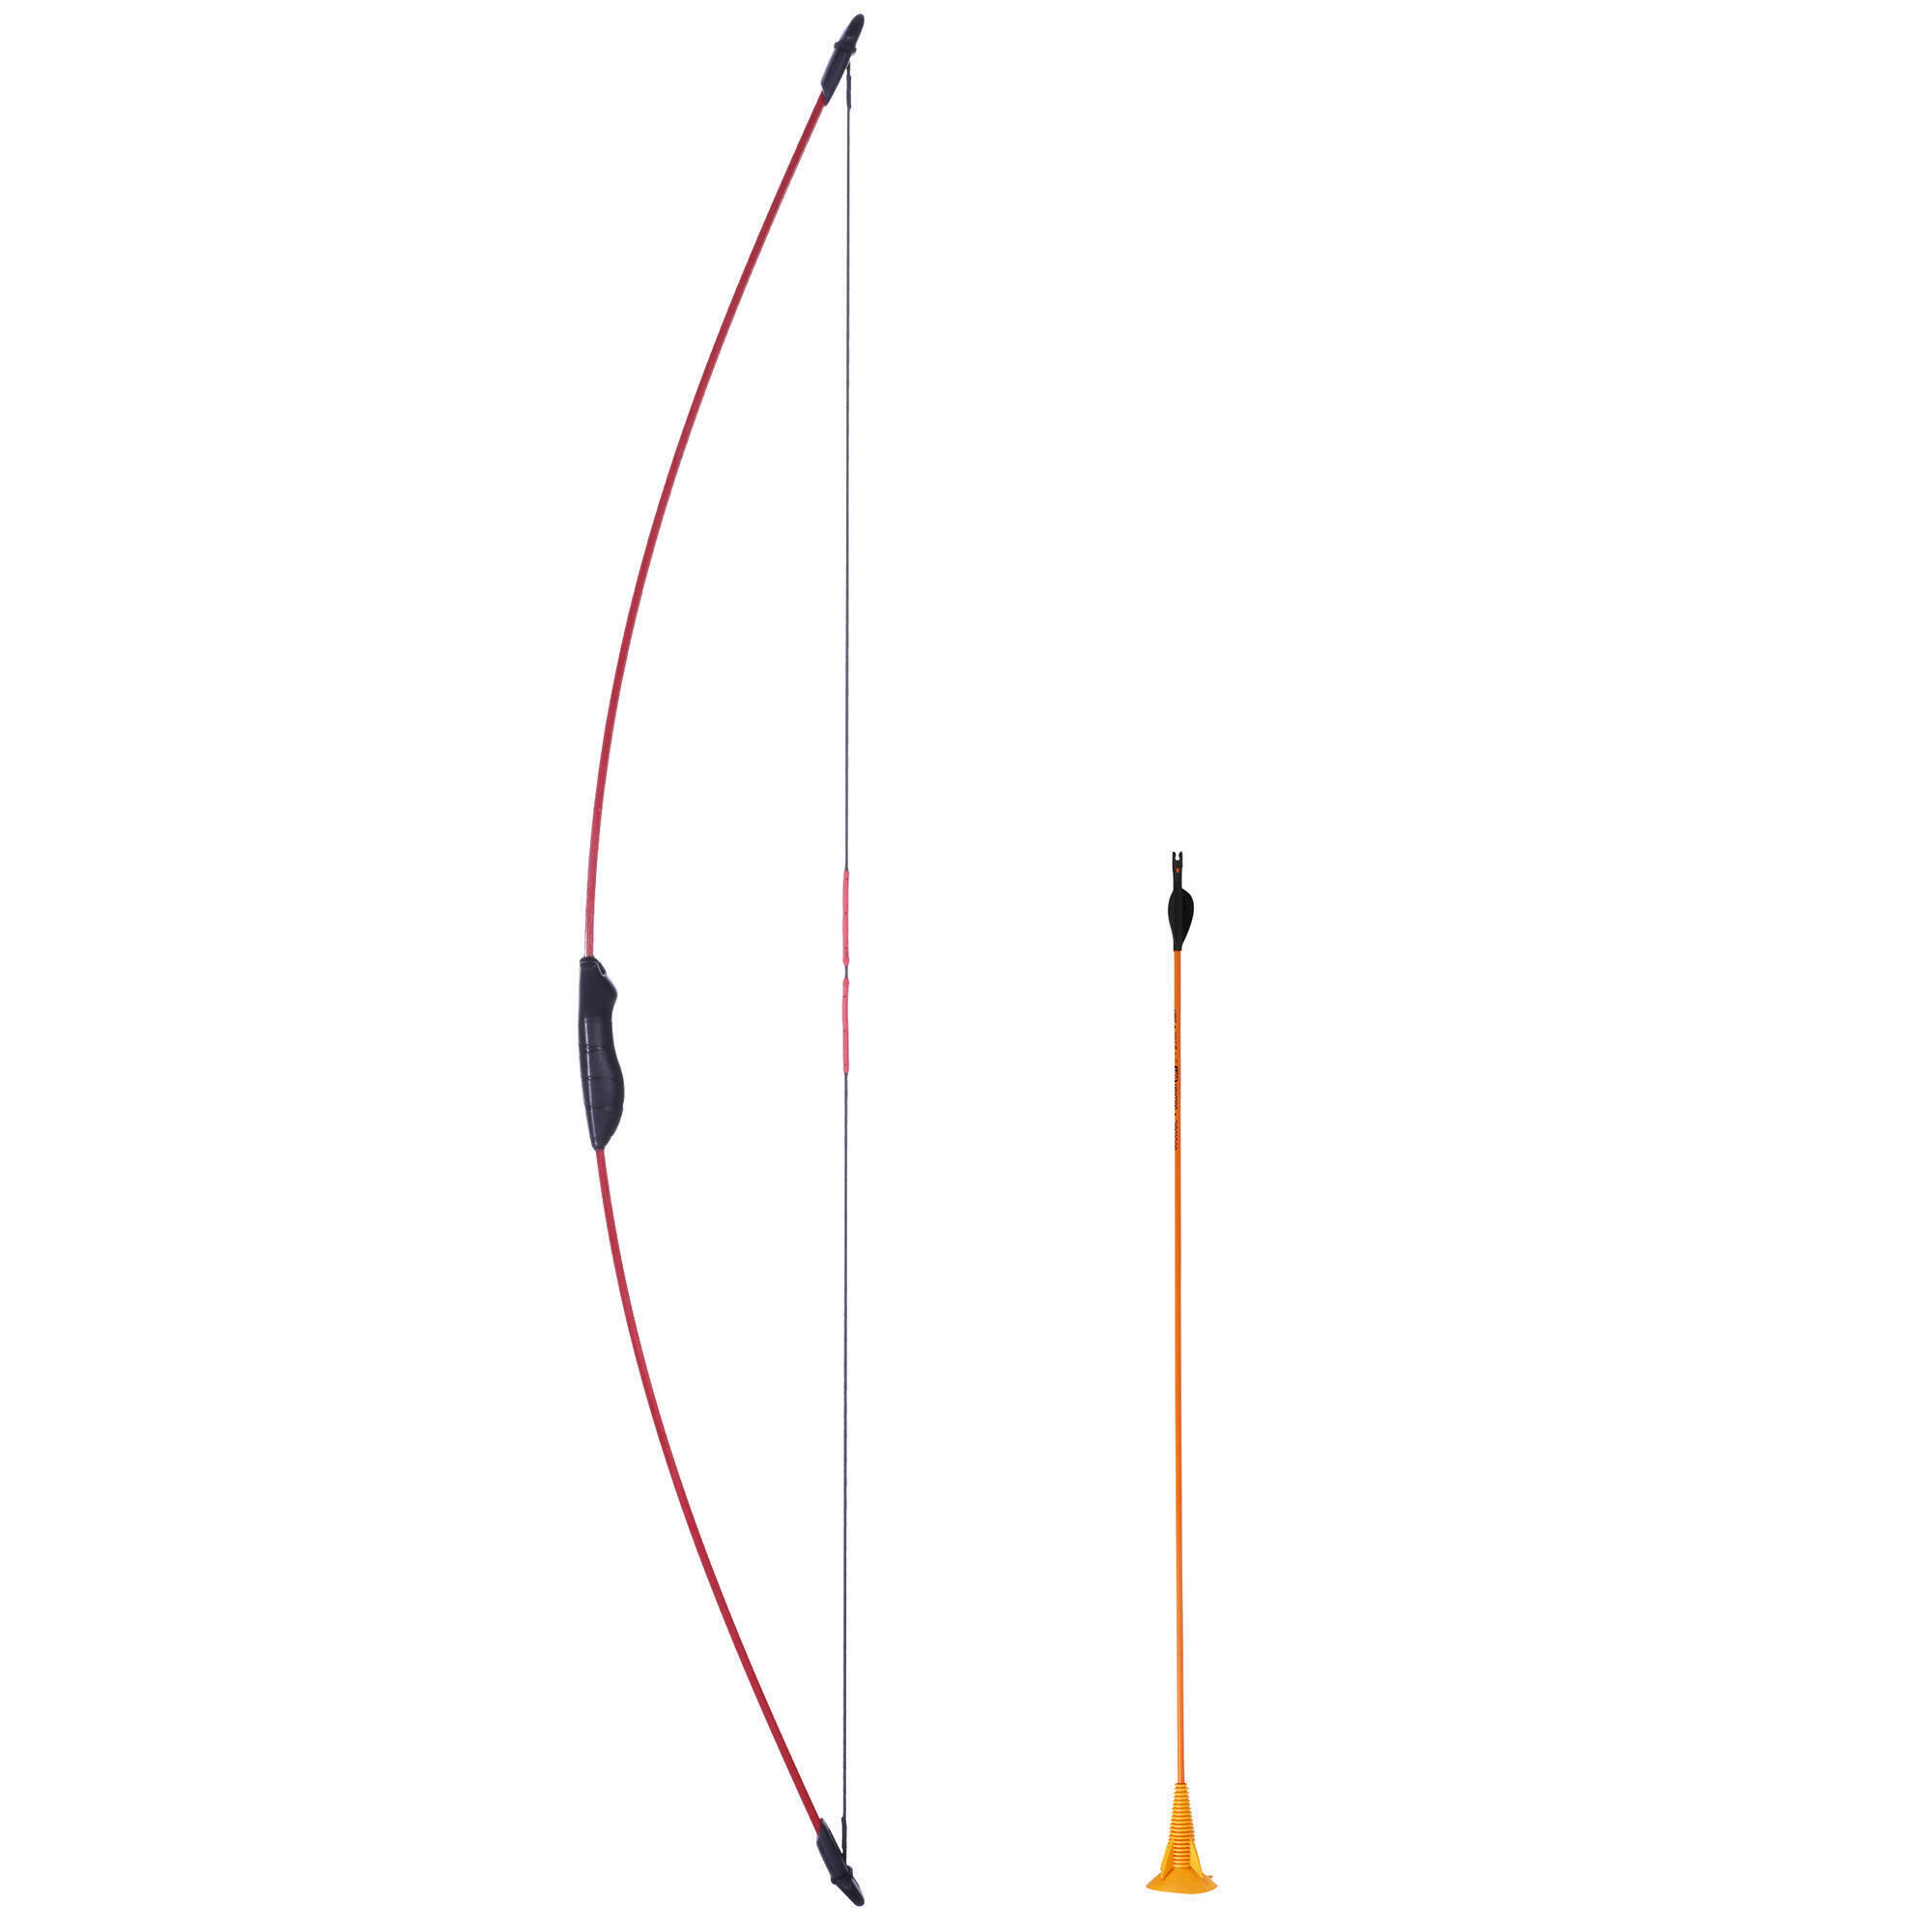 hight resolution of archery bow diagram